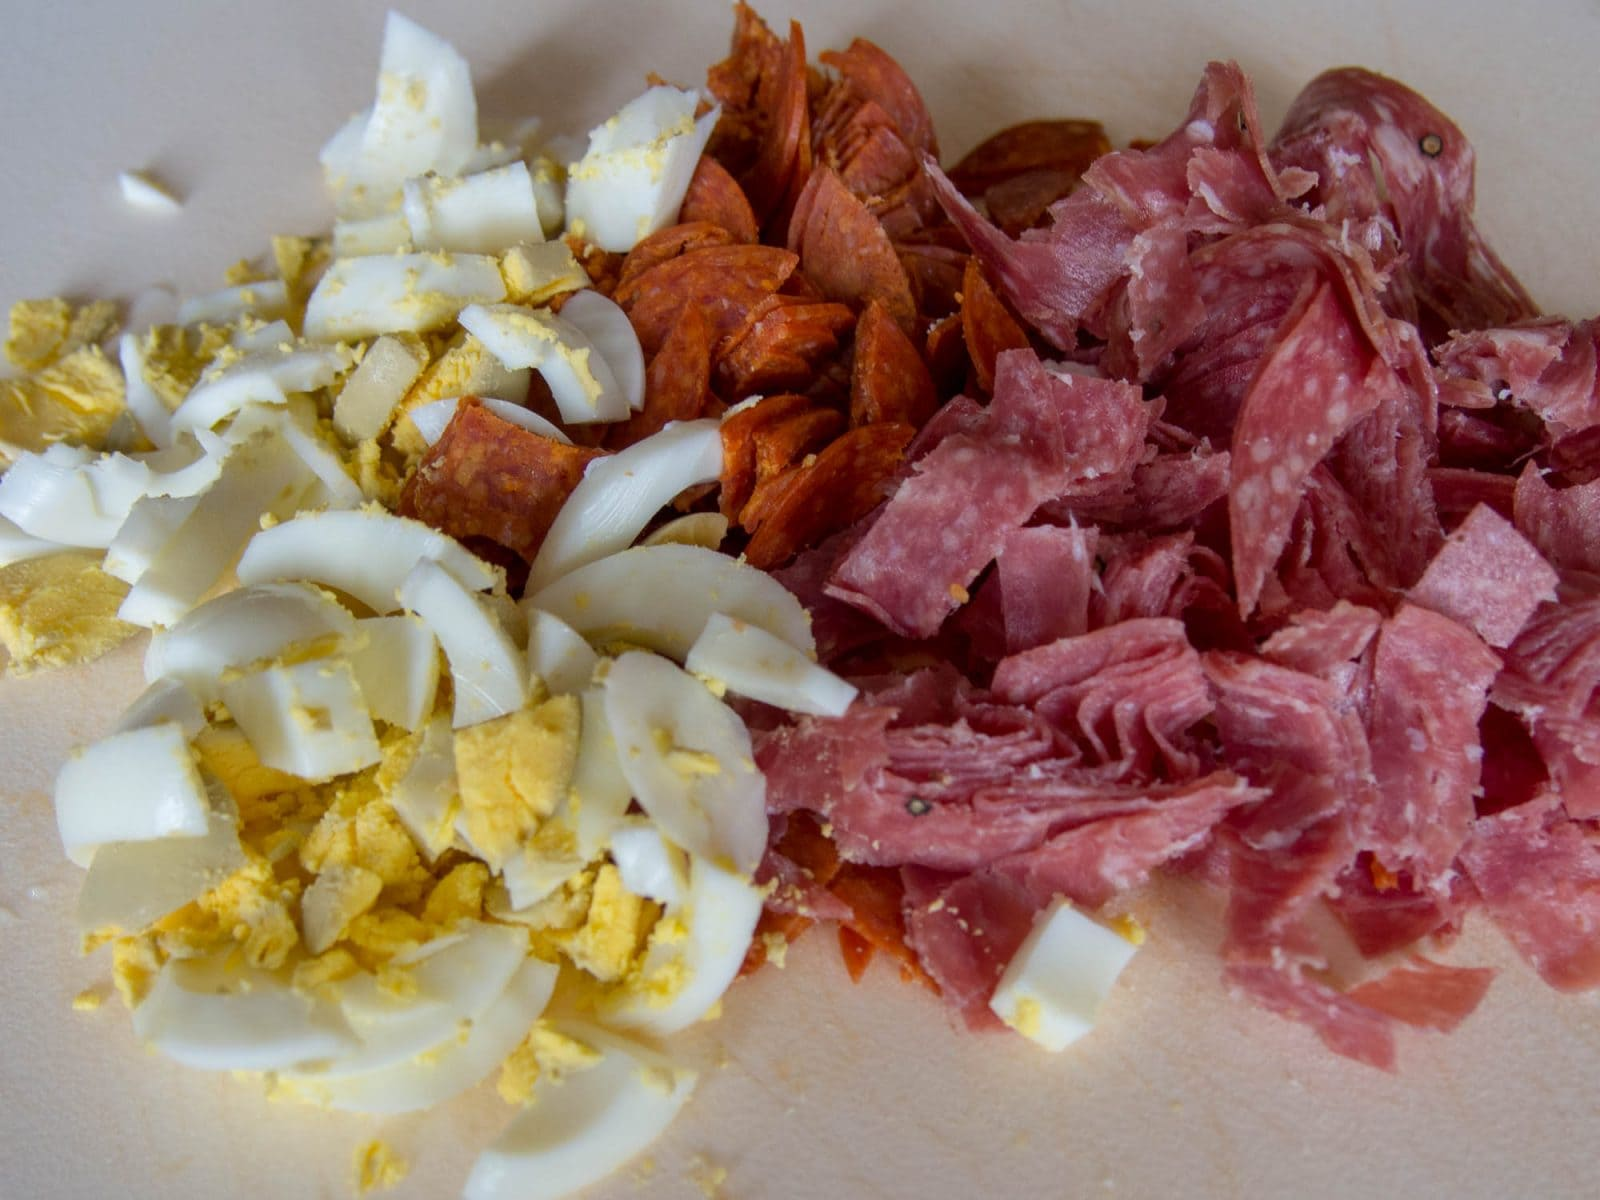 Ingredients for Italian Meat Pie - Egg, pepperoni, proscuitio